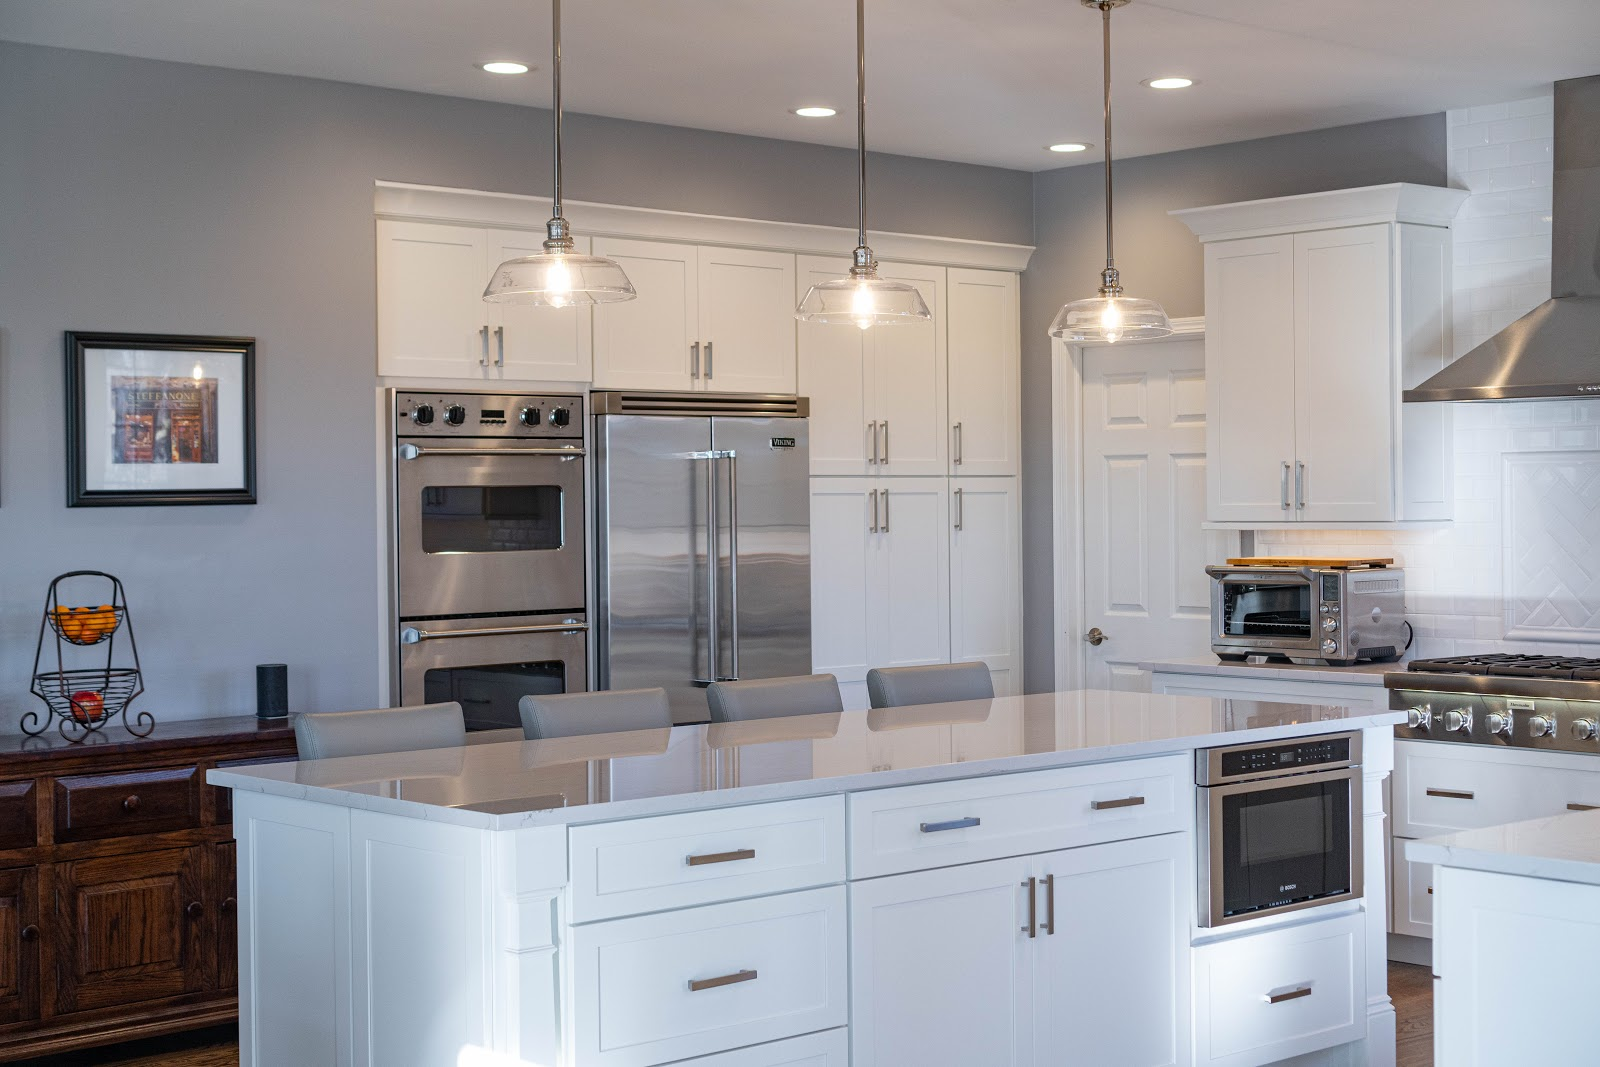 HDC Kitchen with White cabinets and marble counter top